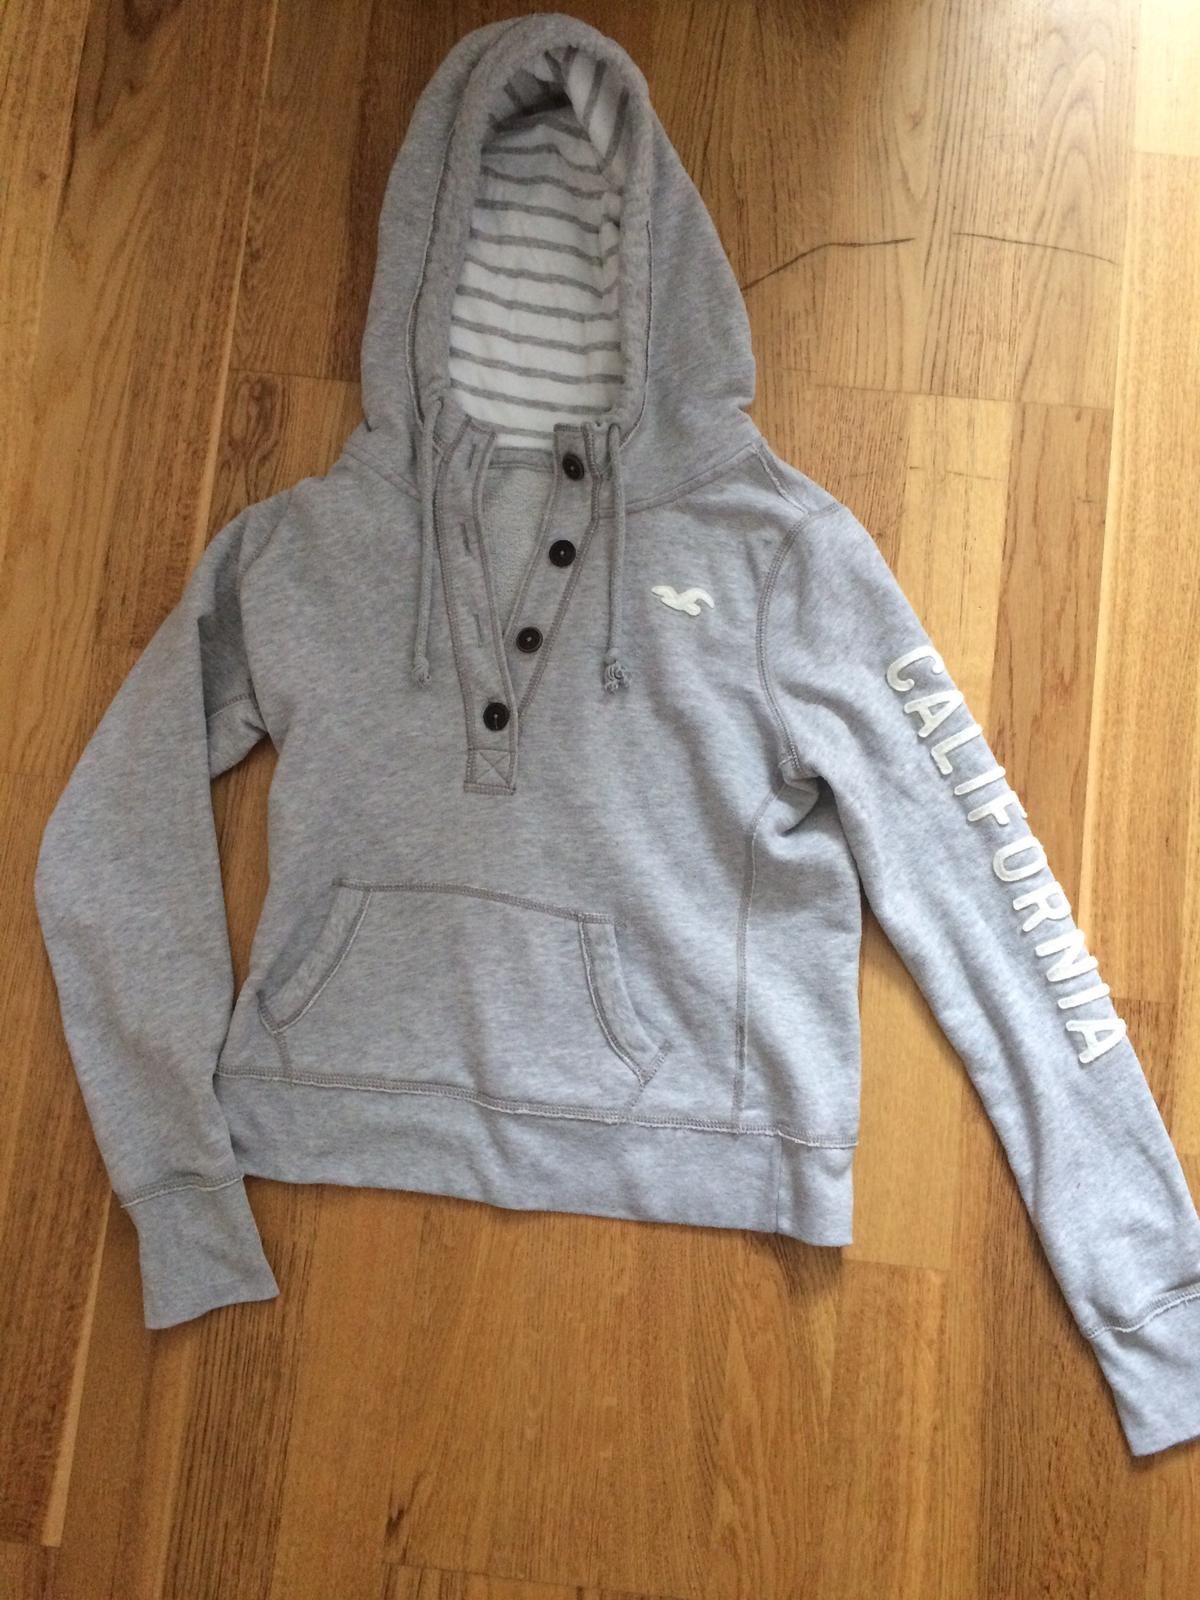 S 34 36 Hollister Pullover in grau